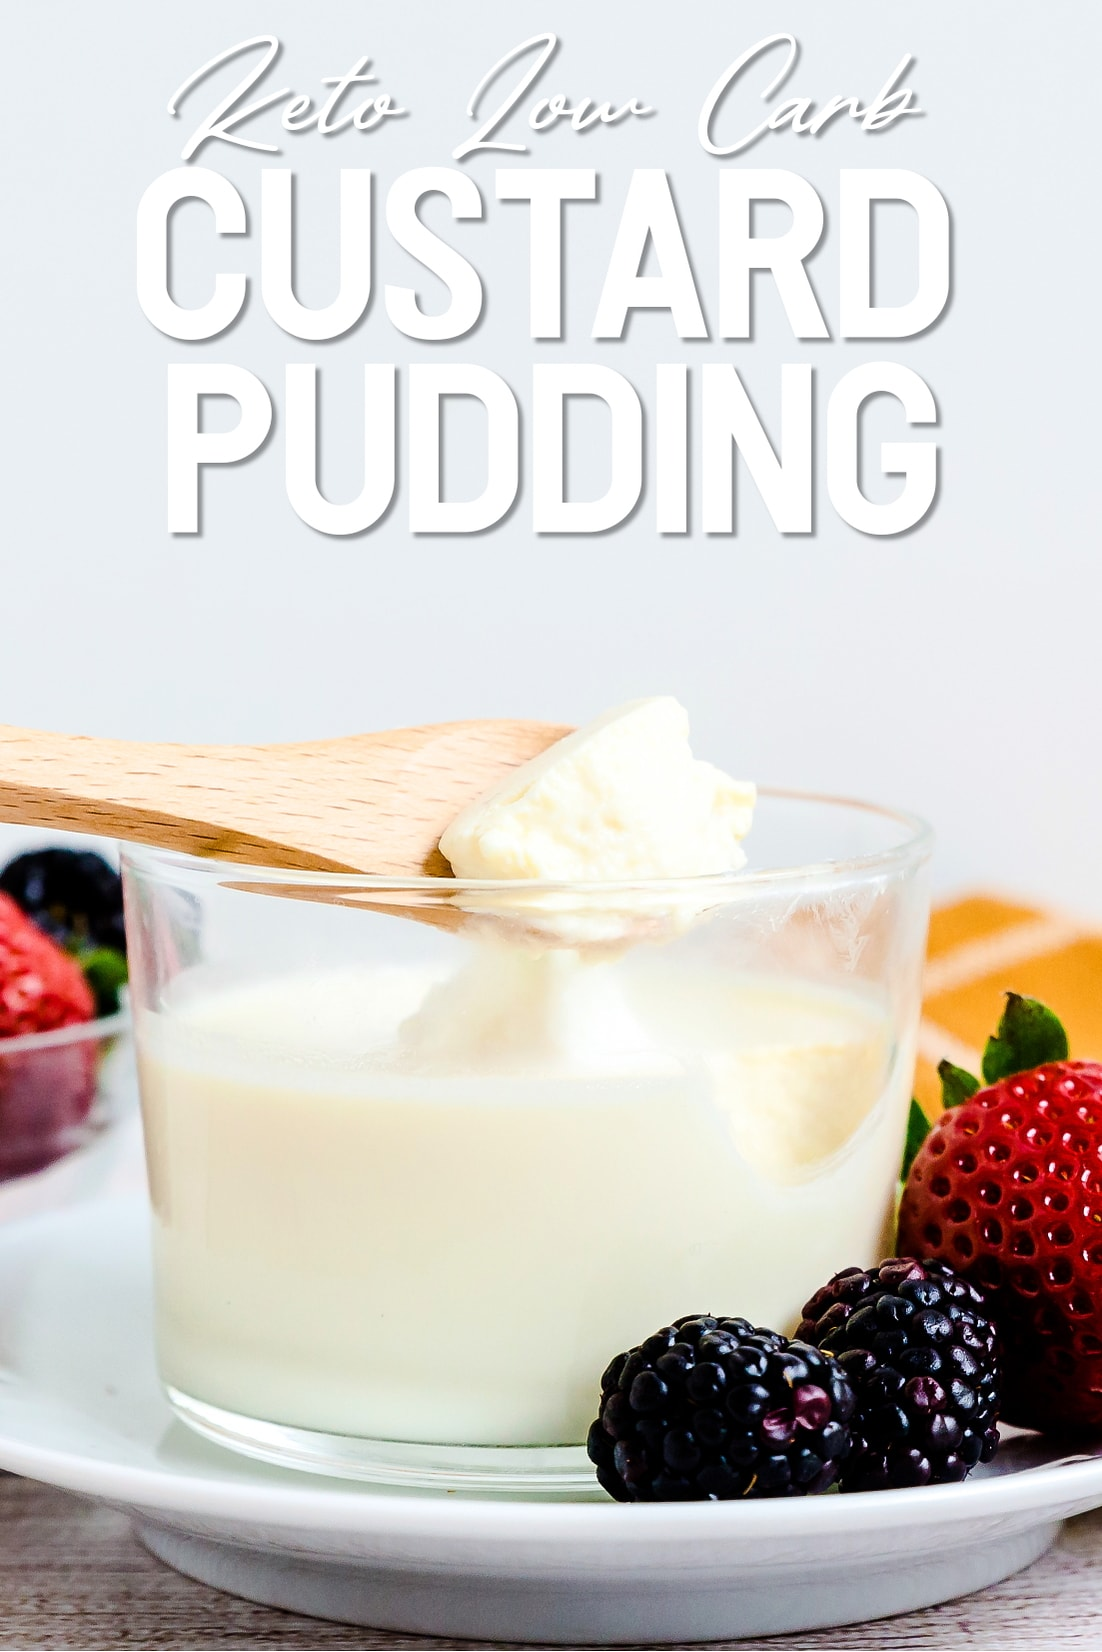 Custard Pudding with a Spoon